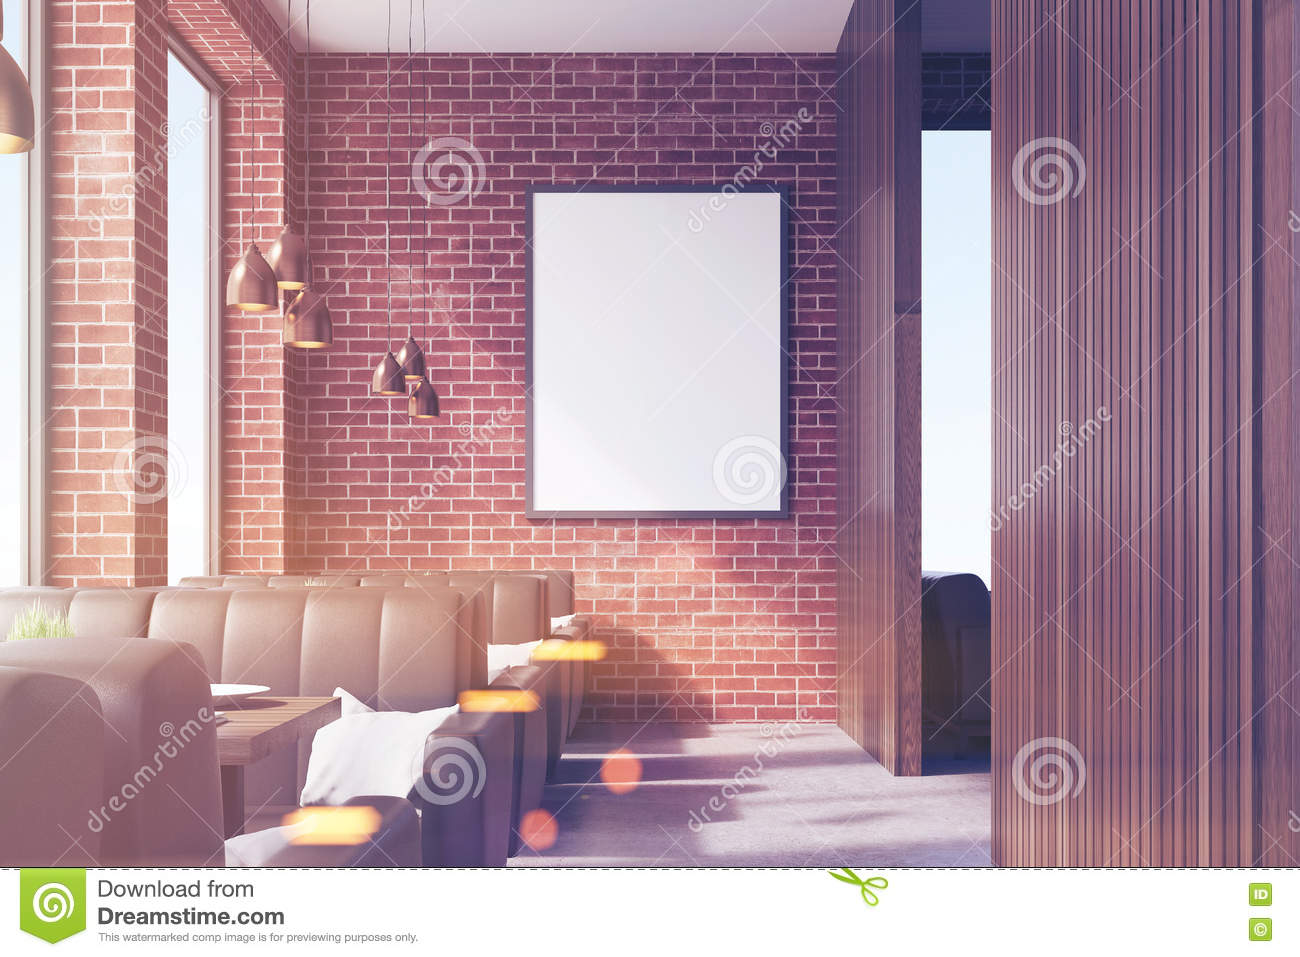 cafe interior with a poster, front stock illustration - image